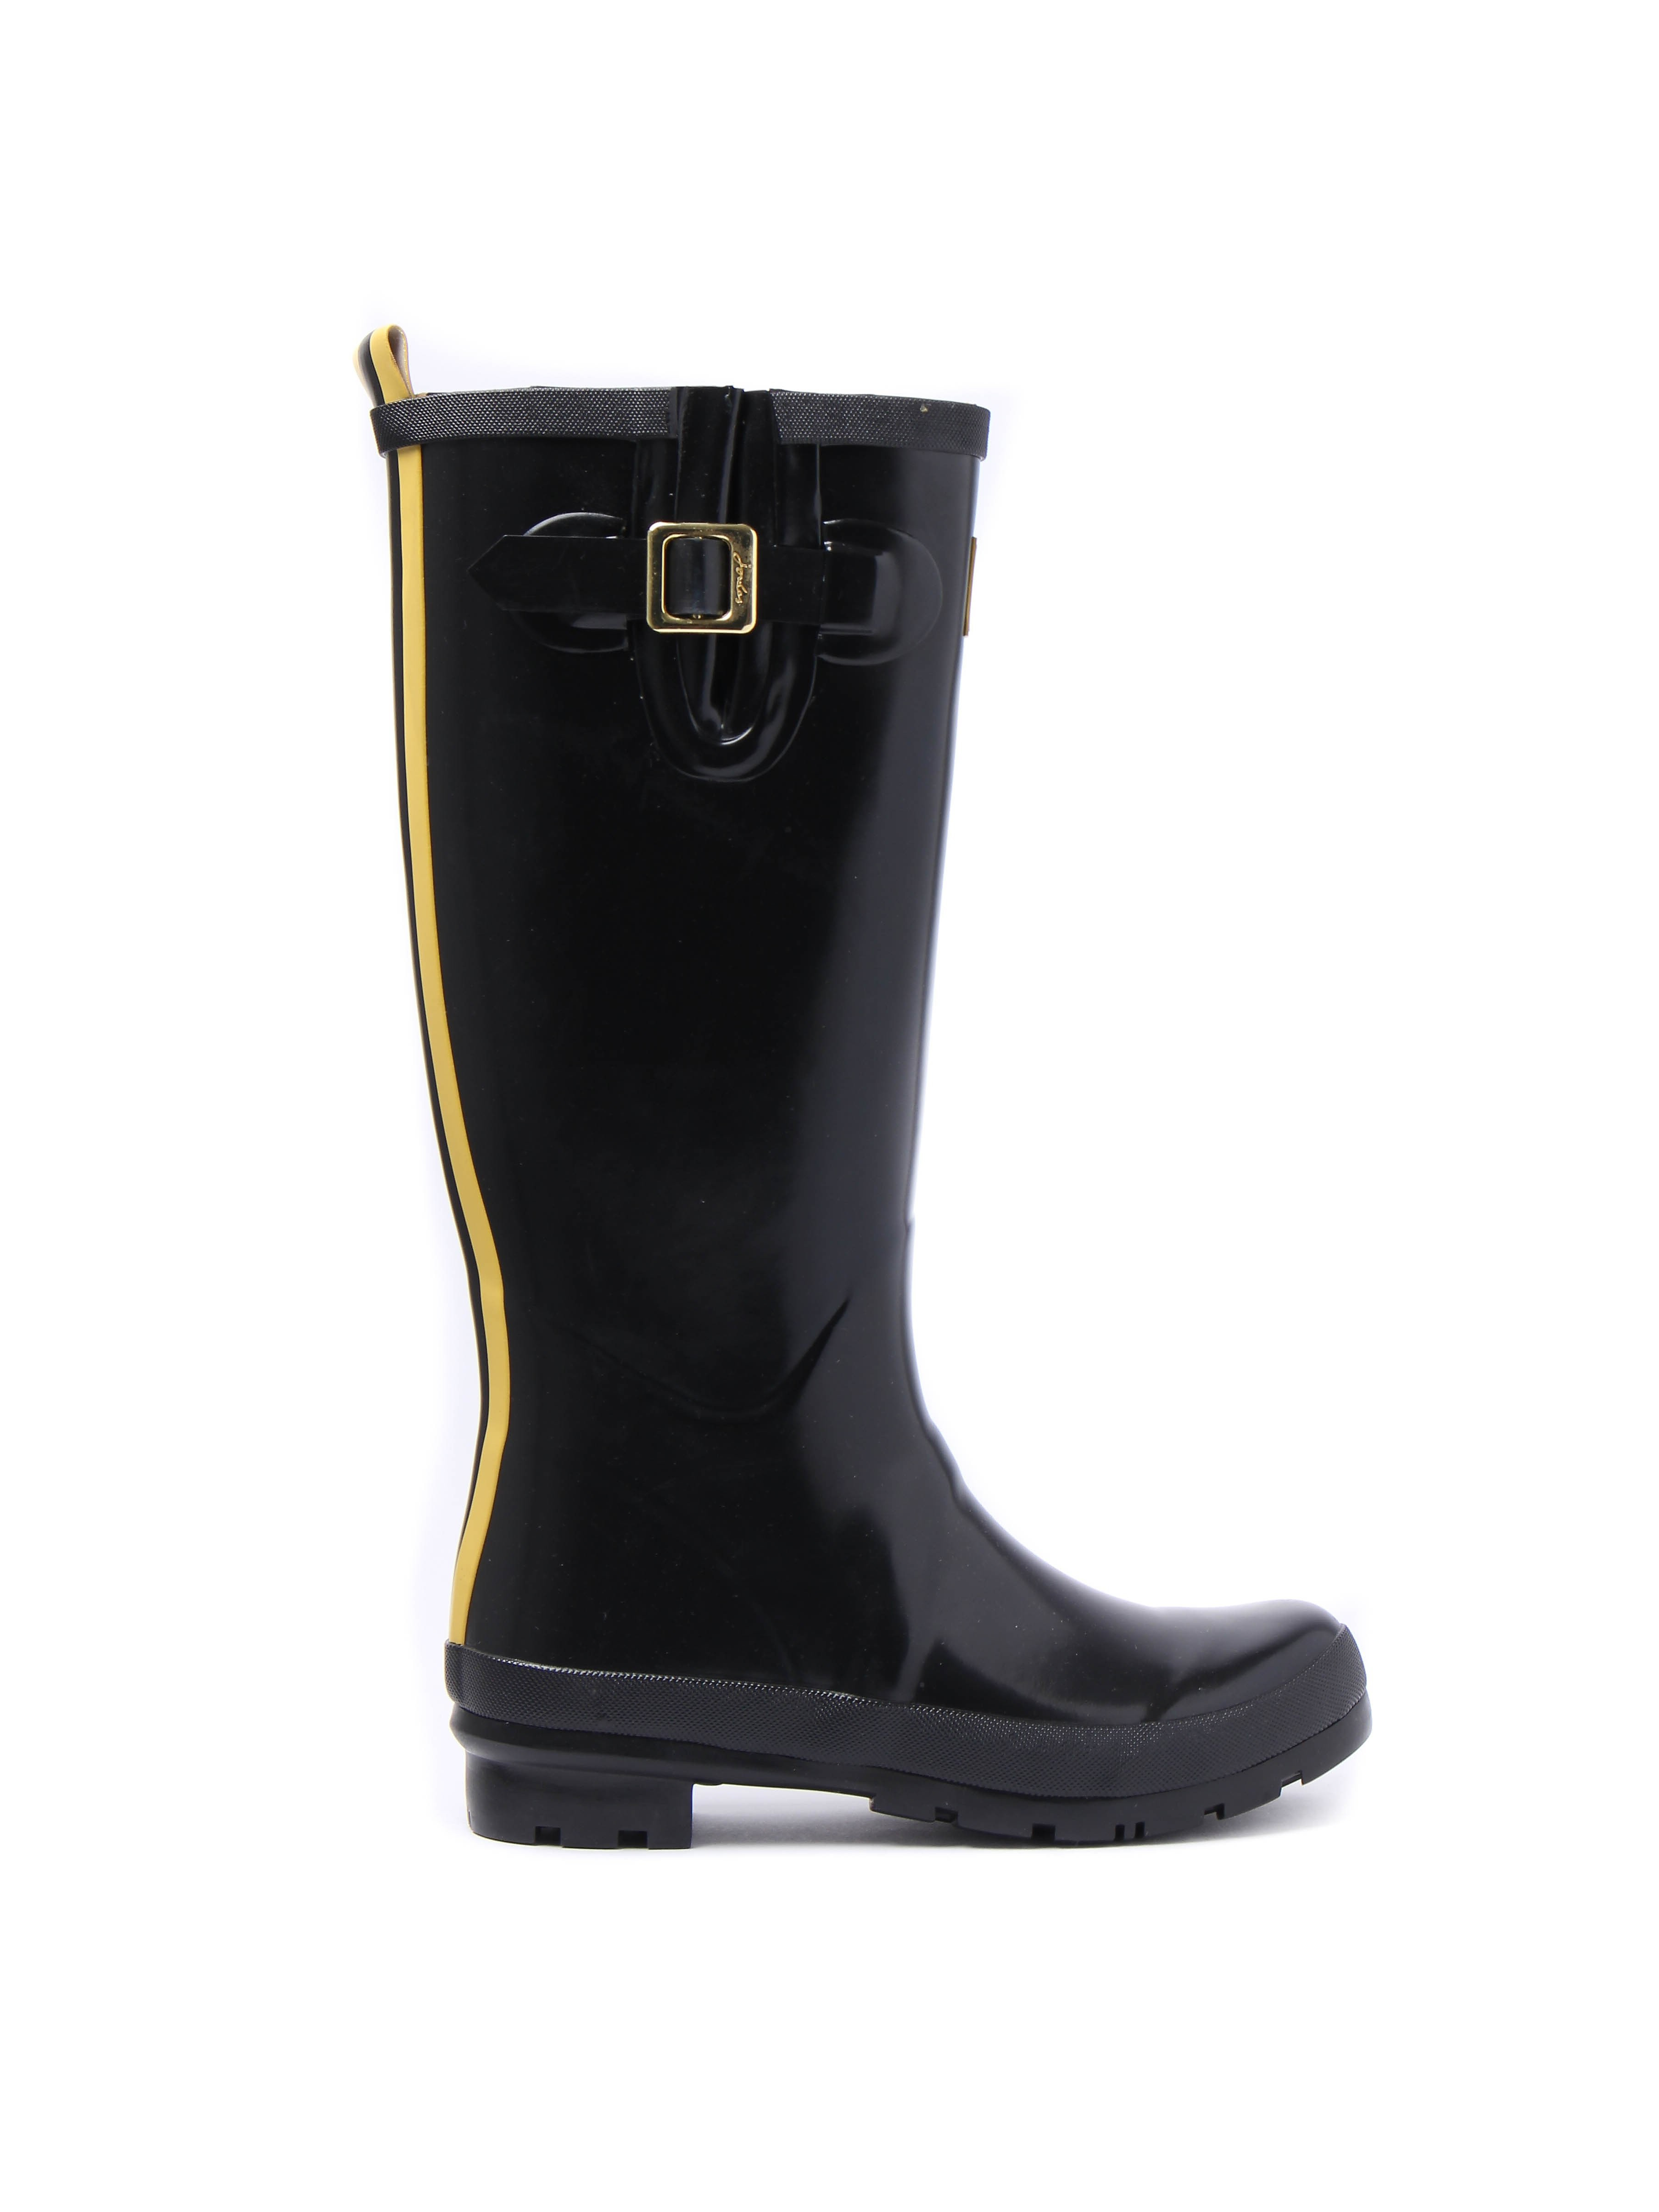 Joules Women's Field Rubber Wellington Boots - Black